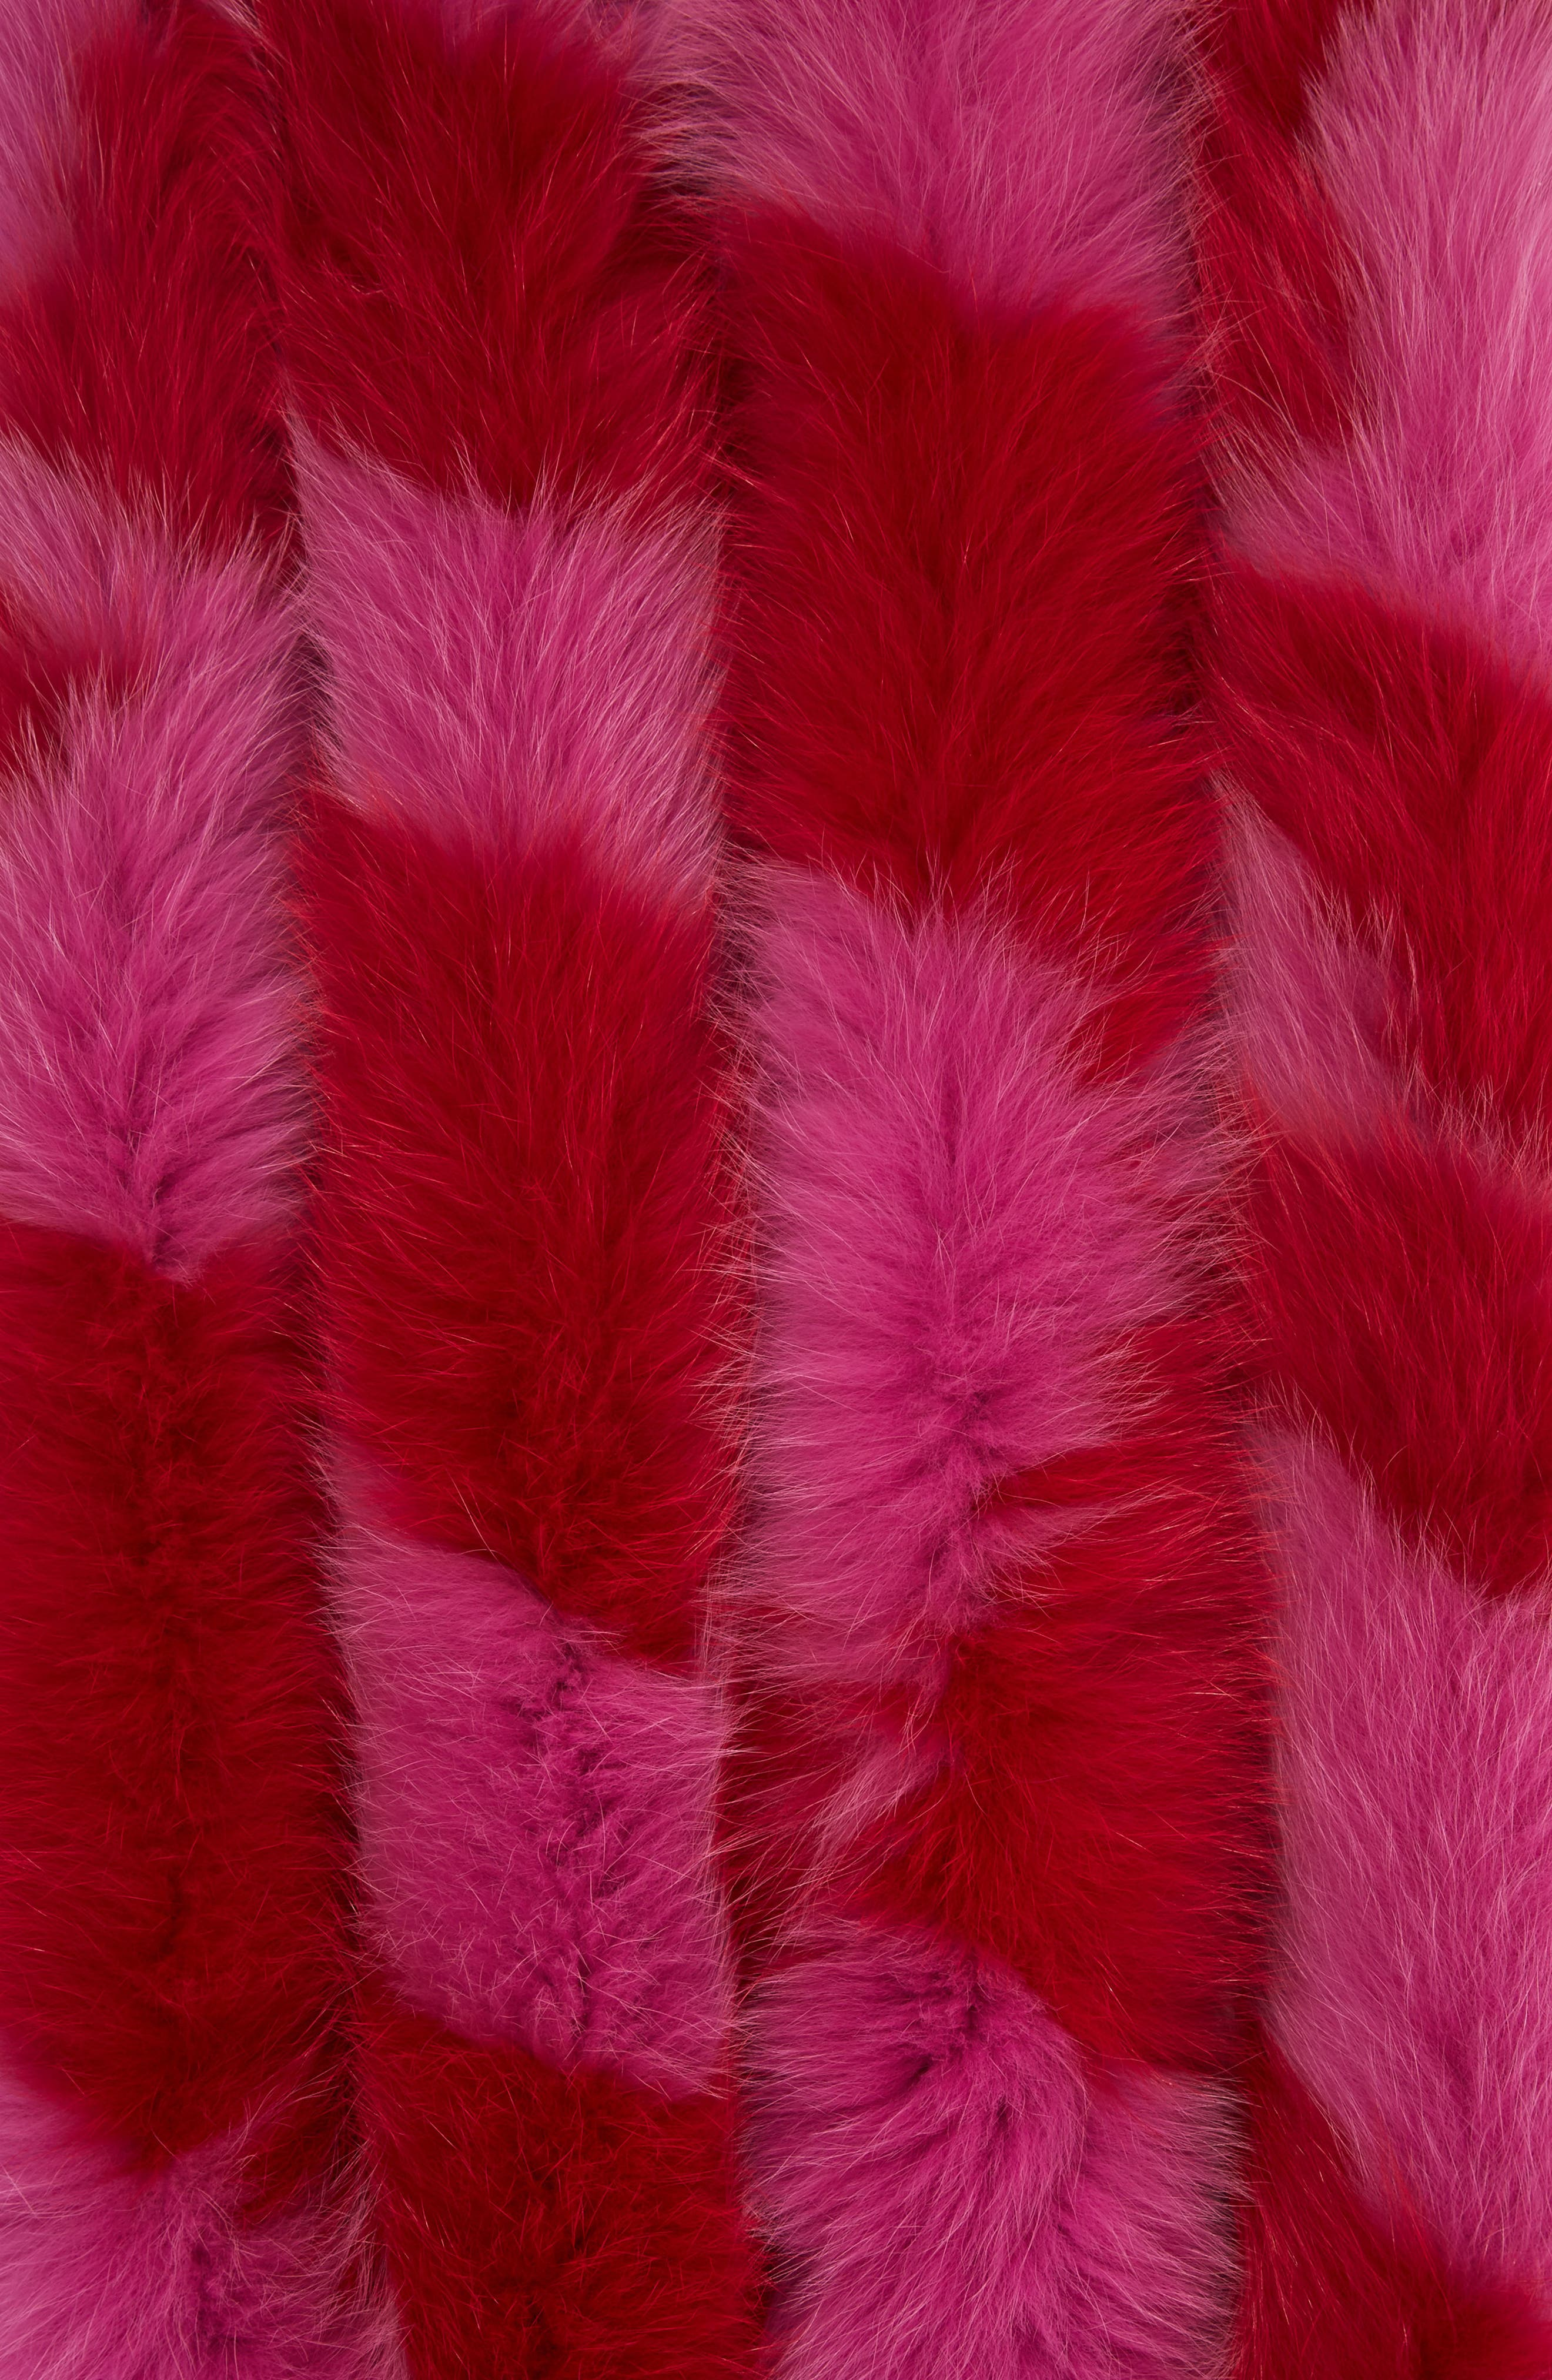 Lacey Genuine Fox Fur Skinny Scarf,                             Alternate thumbnail 2, color,                             Red/Hot Pink